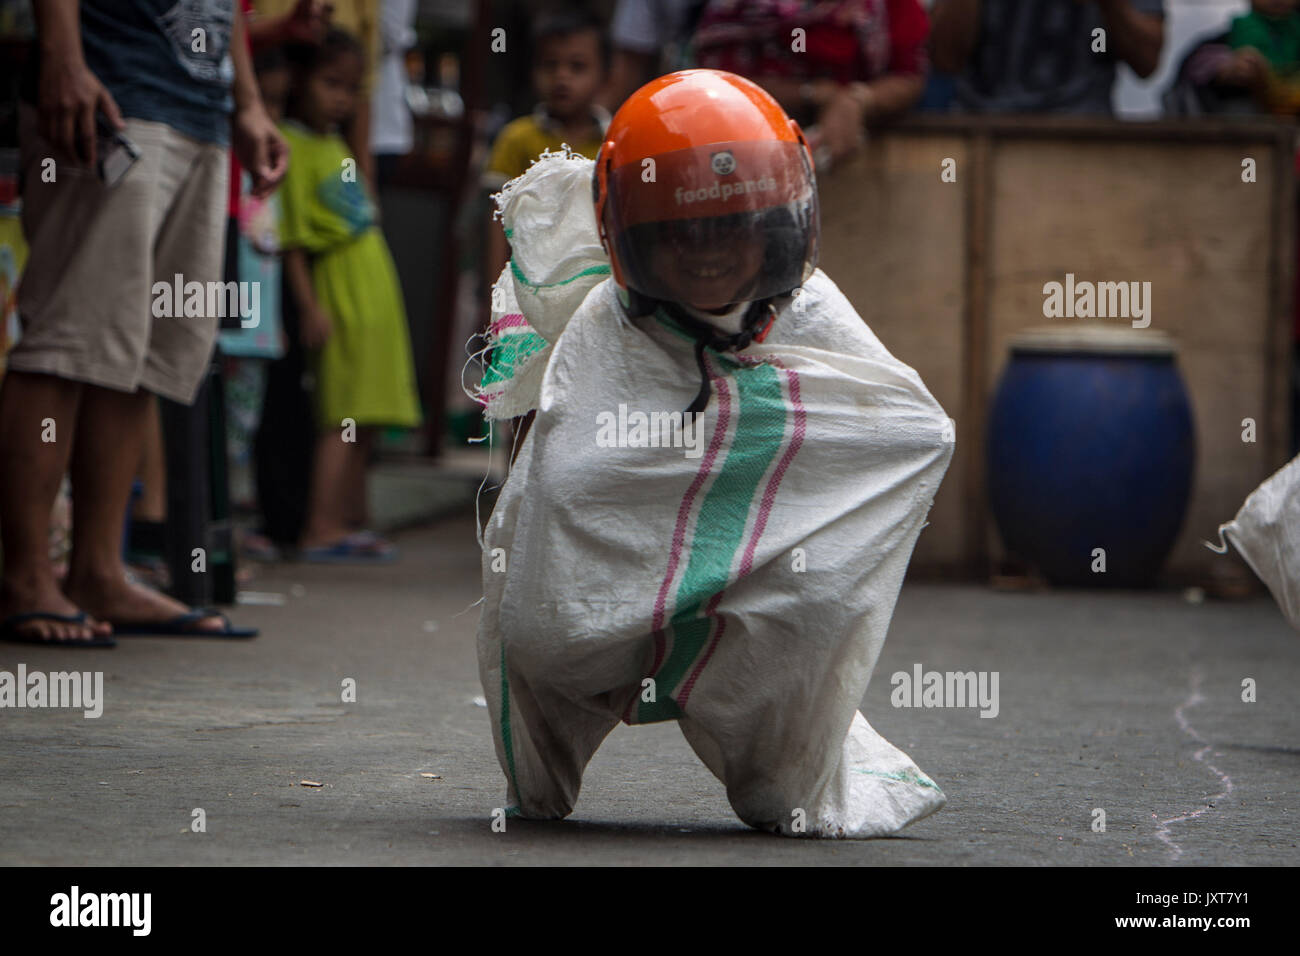 Central Jakarta, Jakarta, Indonesia. 17th Aug, 2017. Children join the gunny sack race (balap karung) tradition during celebrations for the 72nd Indonesia National Independence day on August 17, 2017 in Jakarta, Indonesia. Indonesia became an independent nation on 17th August 1945, having previously been under Dutch rule. Credit: Afriadi Hikmal/ZUMA Wire/Alamy Live News - Stock Image